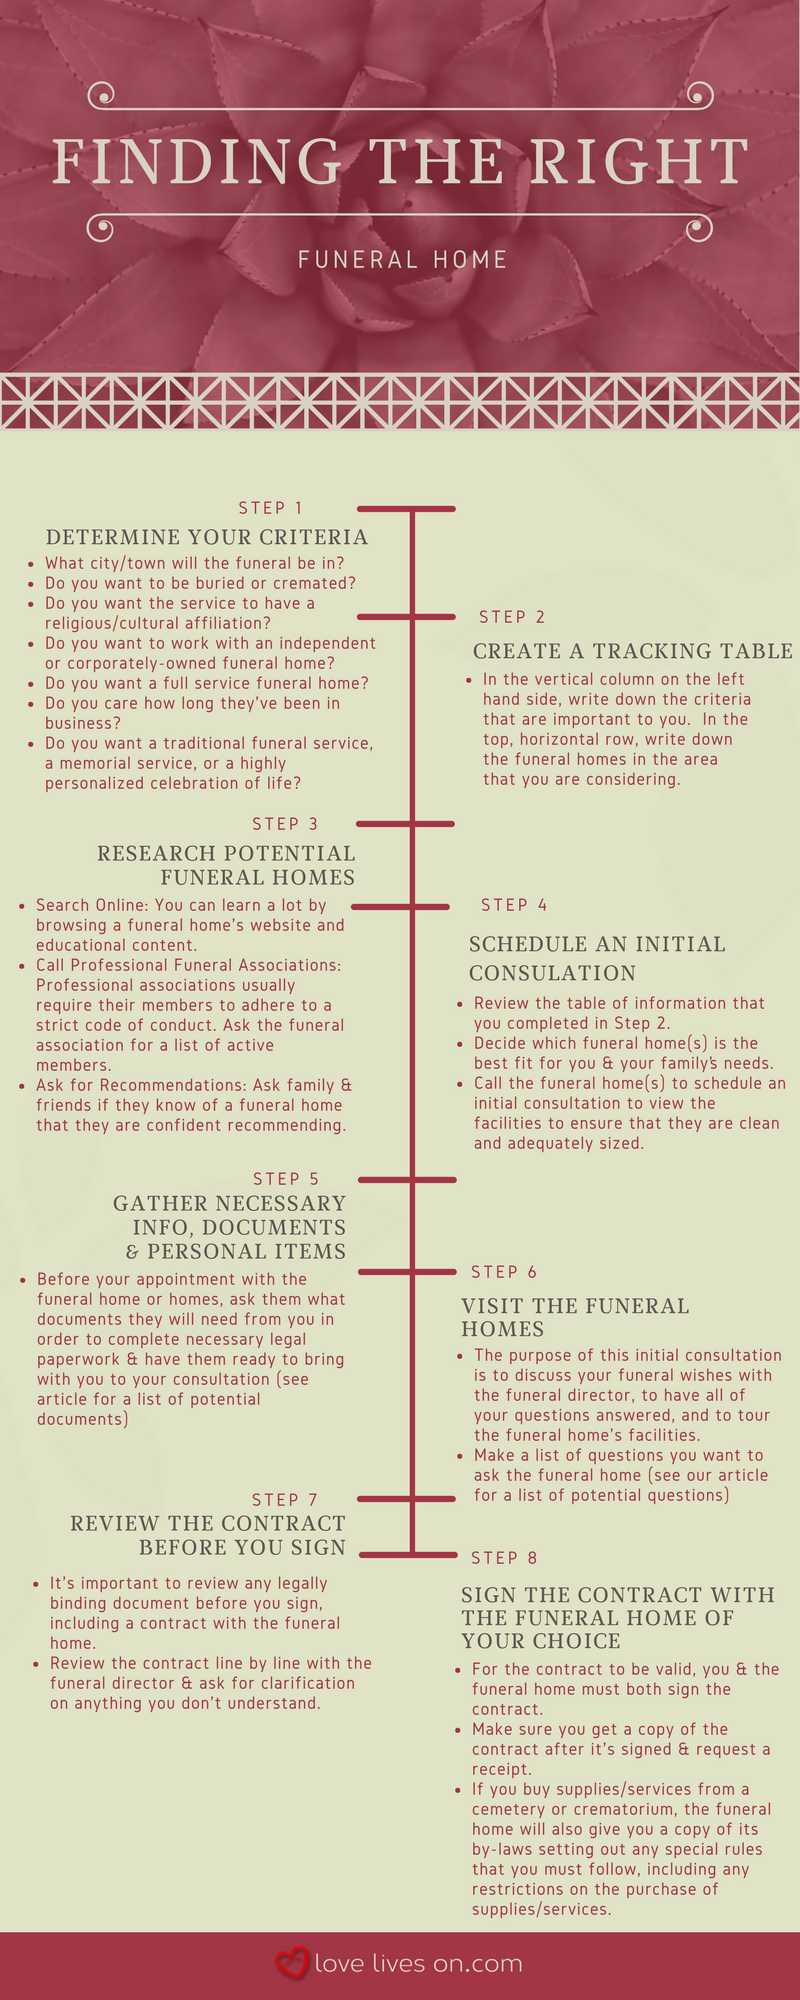 Infographic: Finding the Right Funeral Home